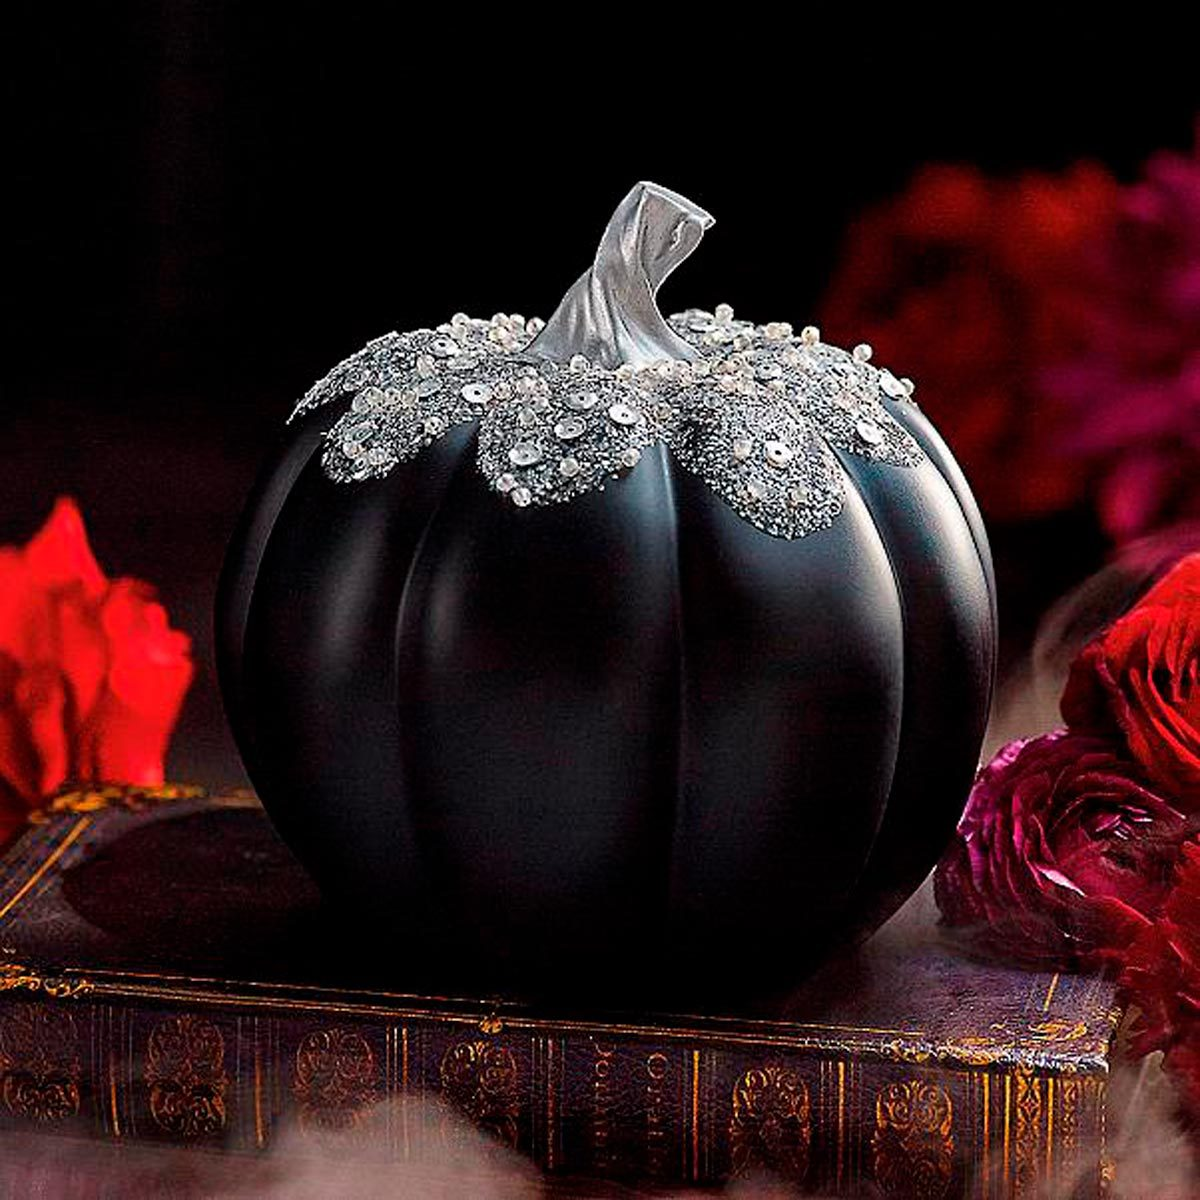 Pumpkin painted all black with silver accent on vine and leafs